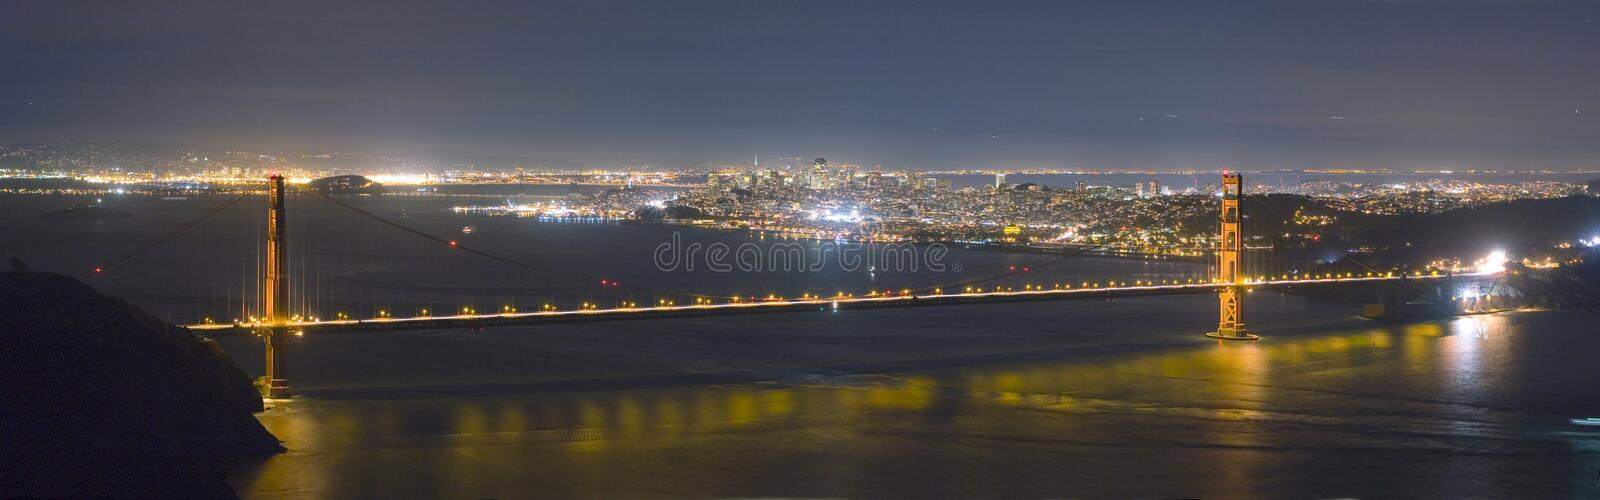 bridge francisco gate golden night panorama san skyline στοκ φωτογραφίες